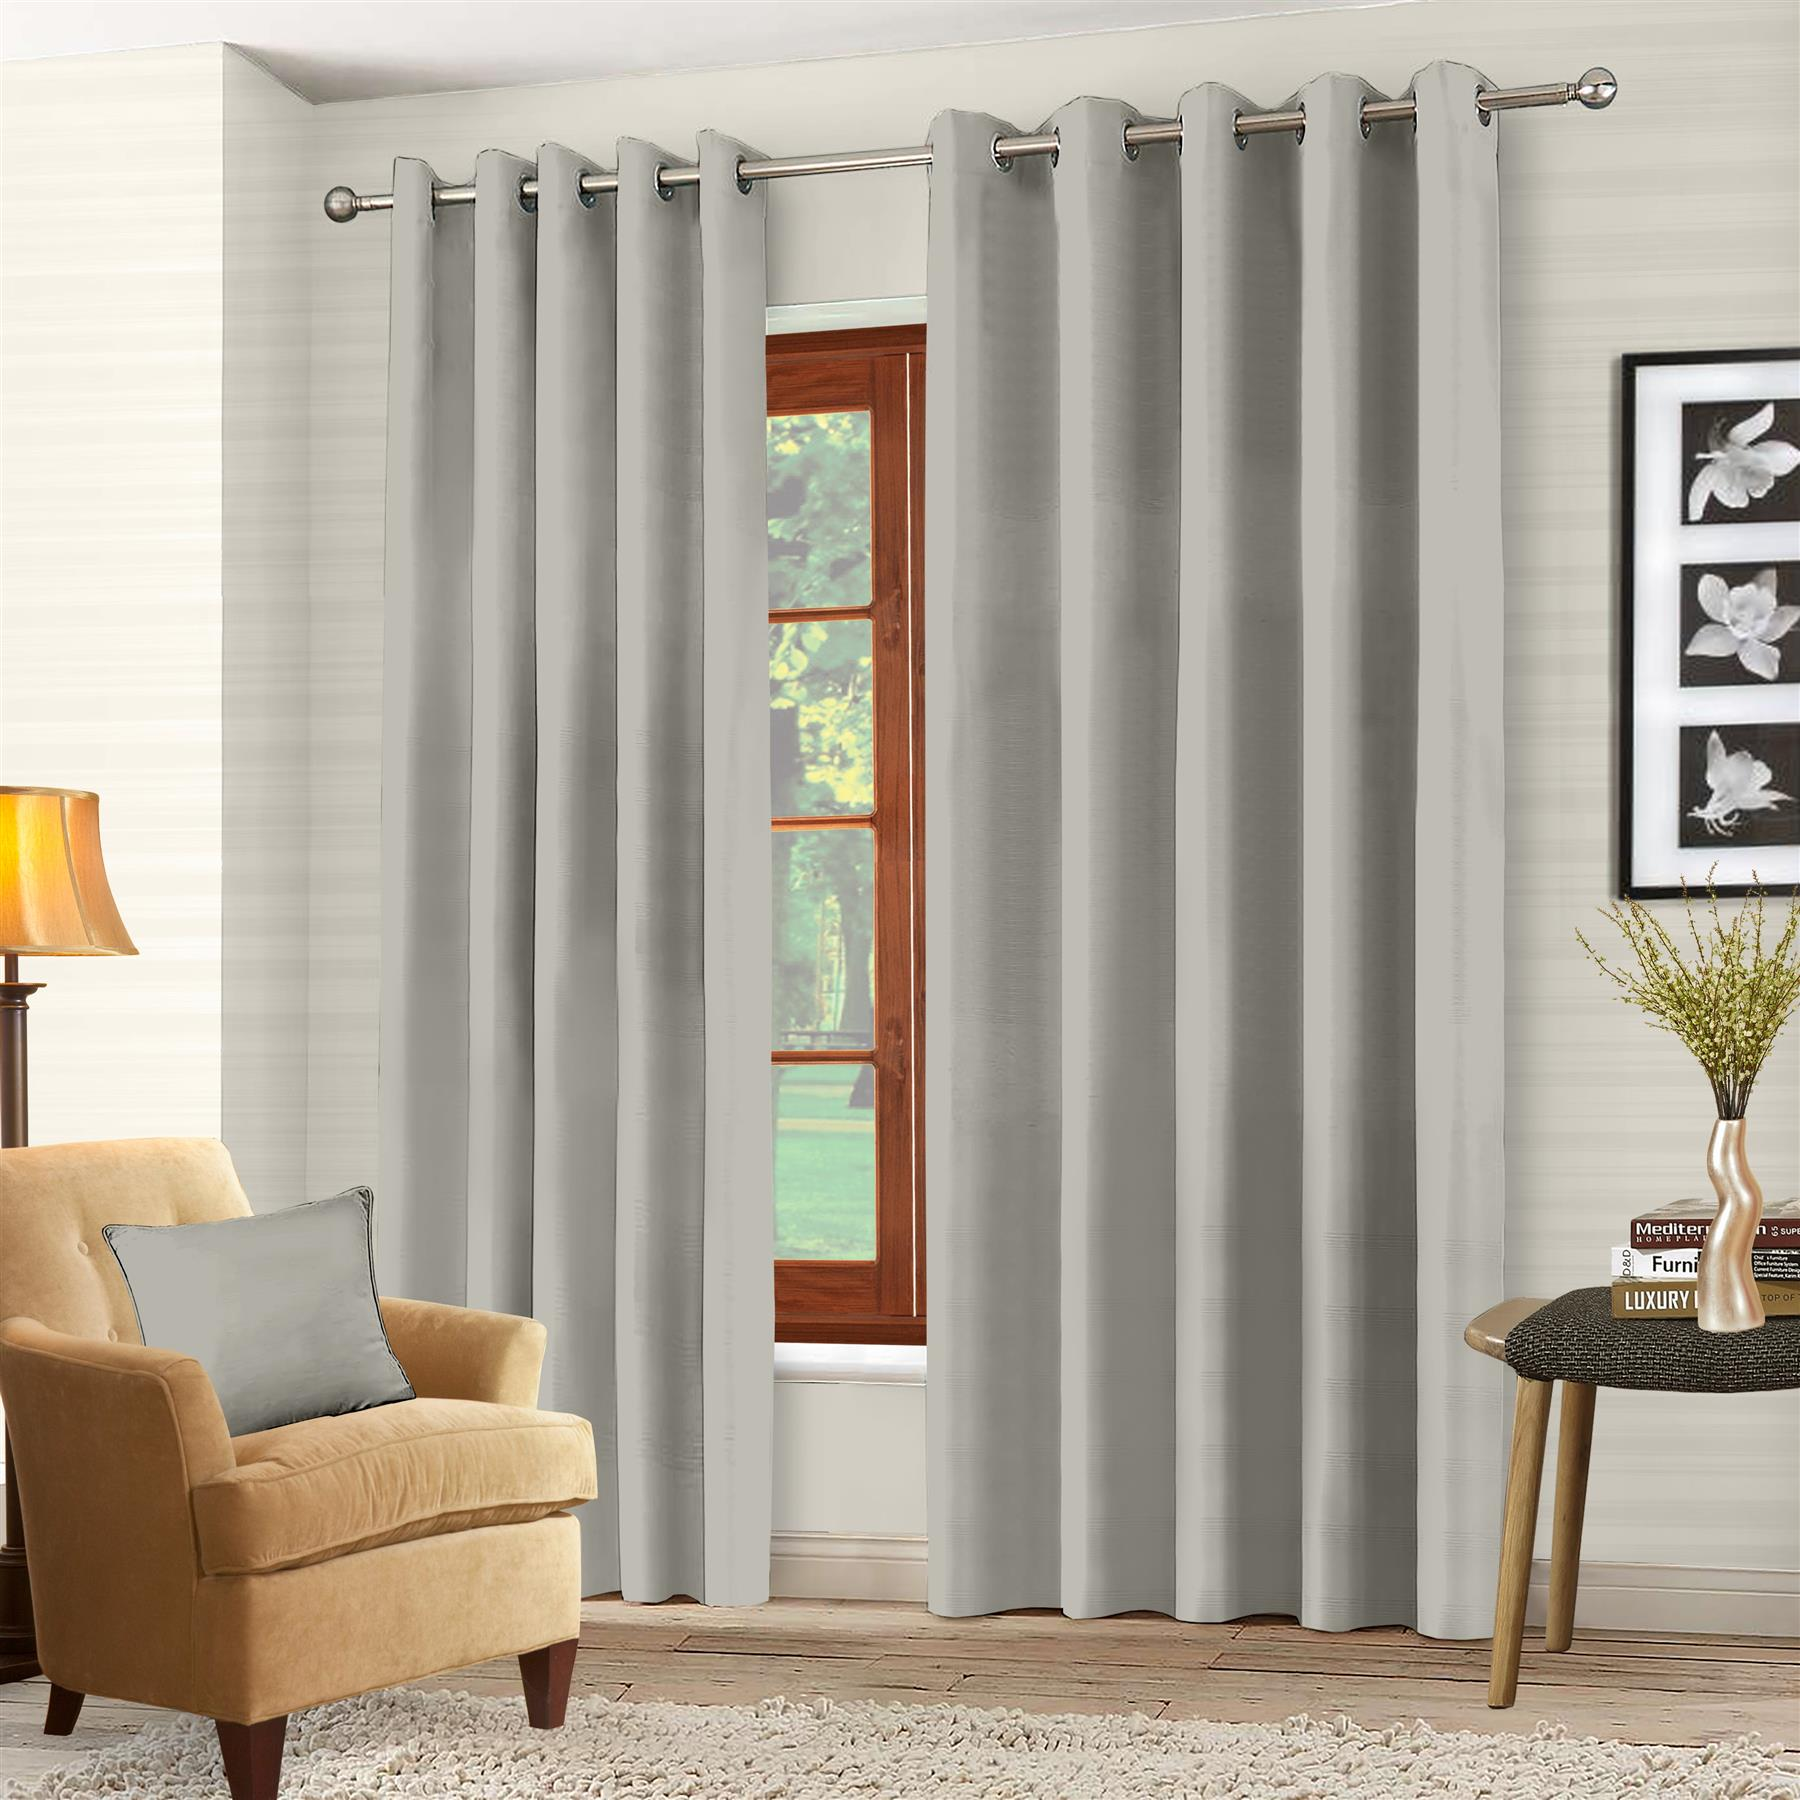 Luxury-Thermal-Blackout-Eyelet-Ring-Top-Curtains-Pair-with-tie-backs thumbnail 49